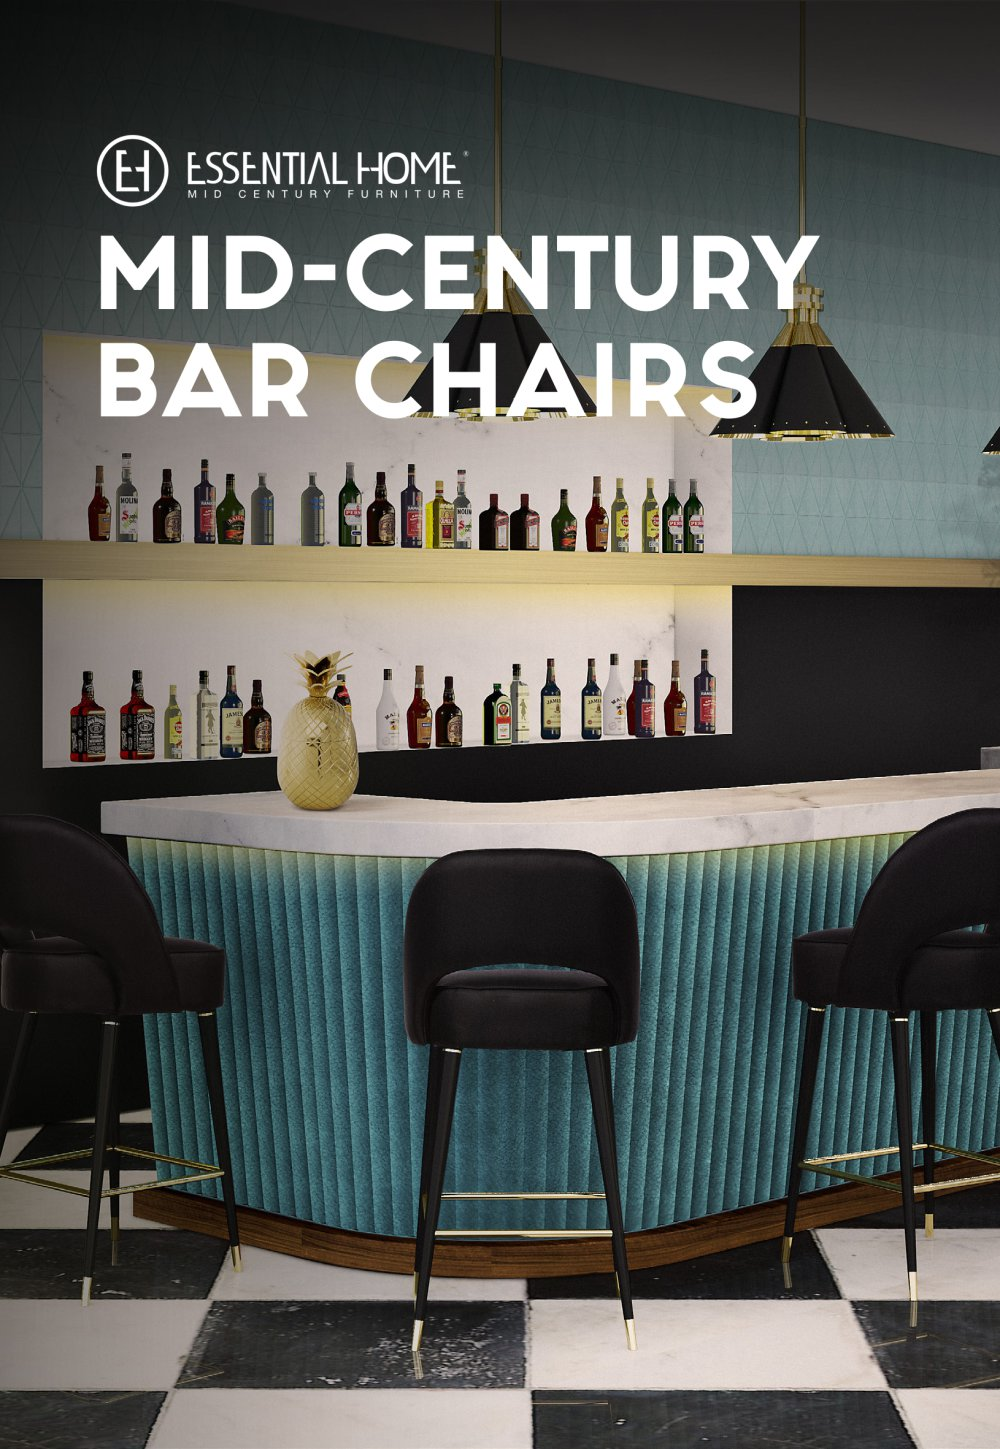 Mid century bar chairs 1 27 pages